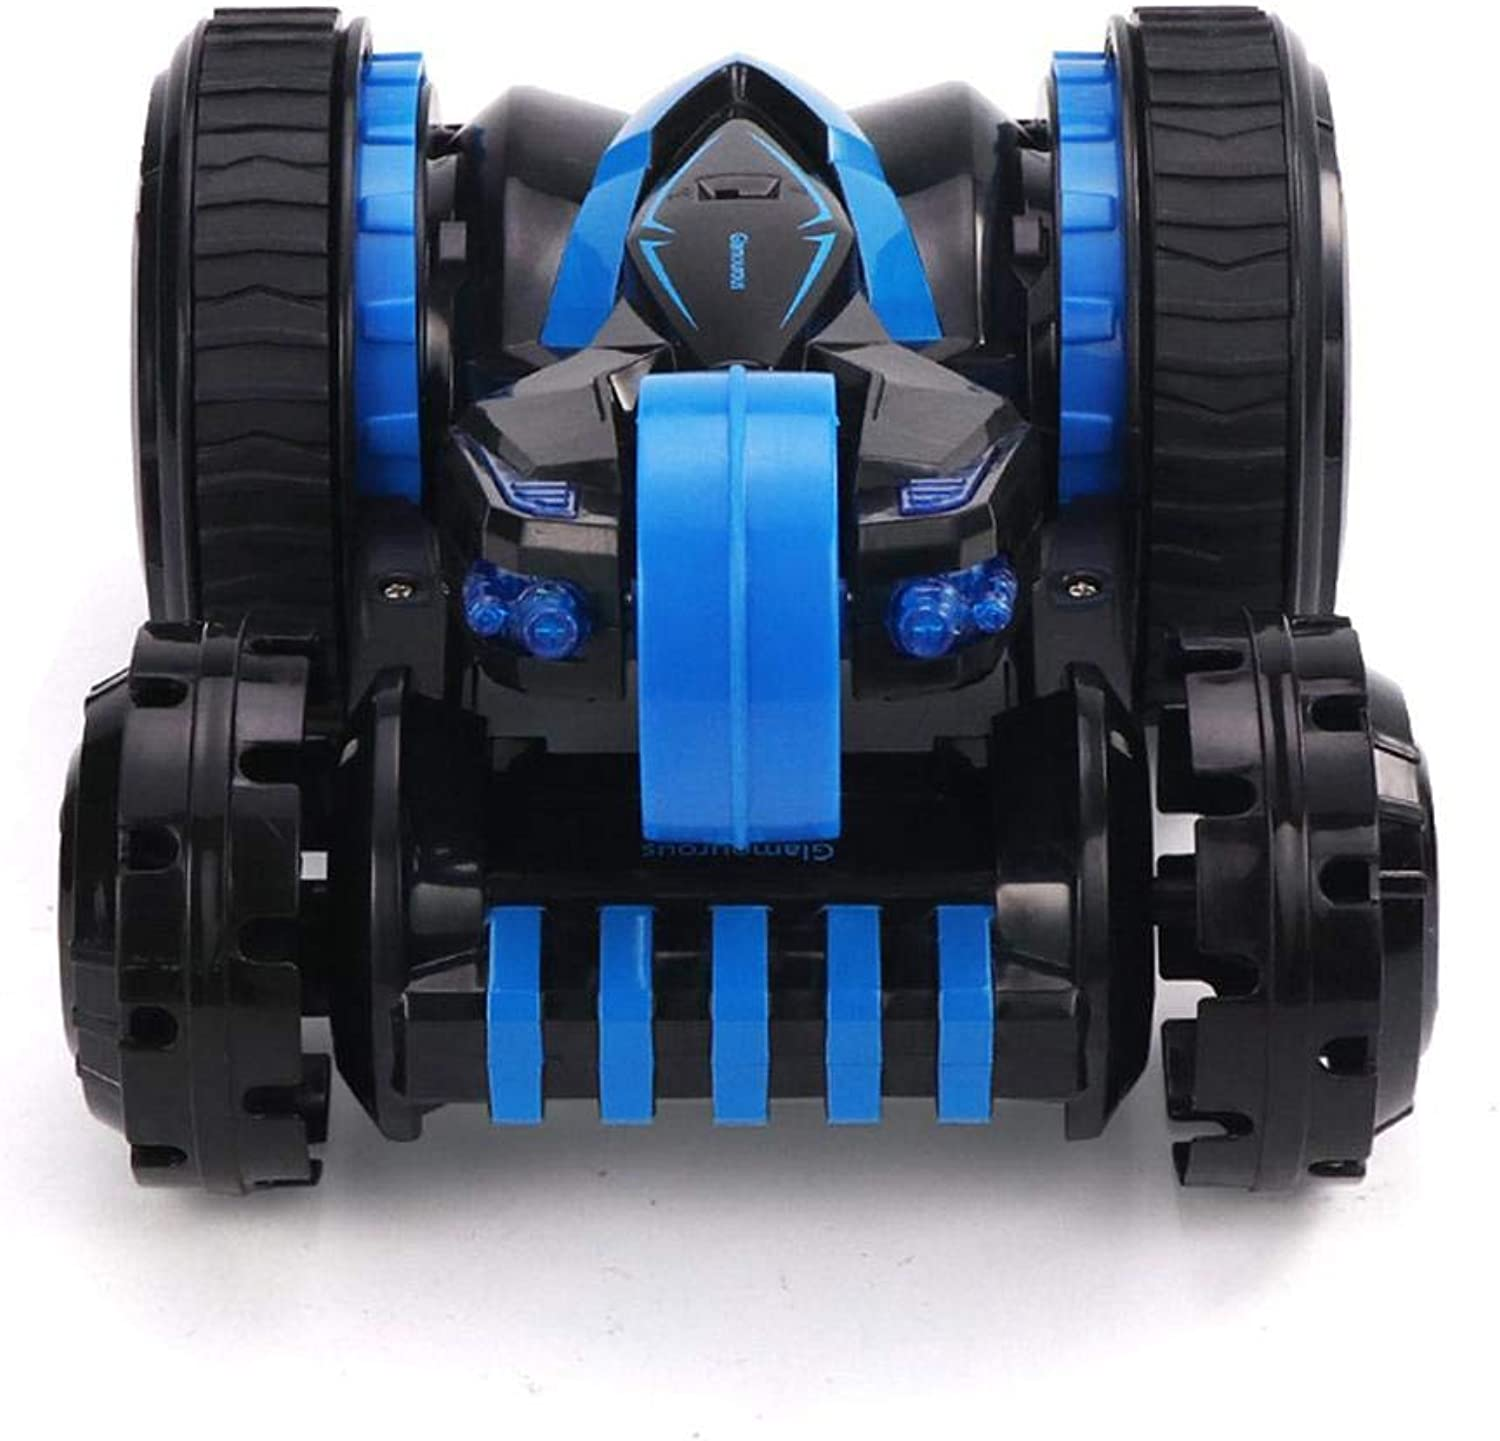 Remote Control Car,Foonee 360 Degree Double Sided redating RC Stunt Car,2.4GHz High Speed Rechargeable Remote Control Toy Cars for Boys and Girls Gifts